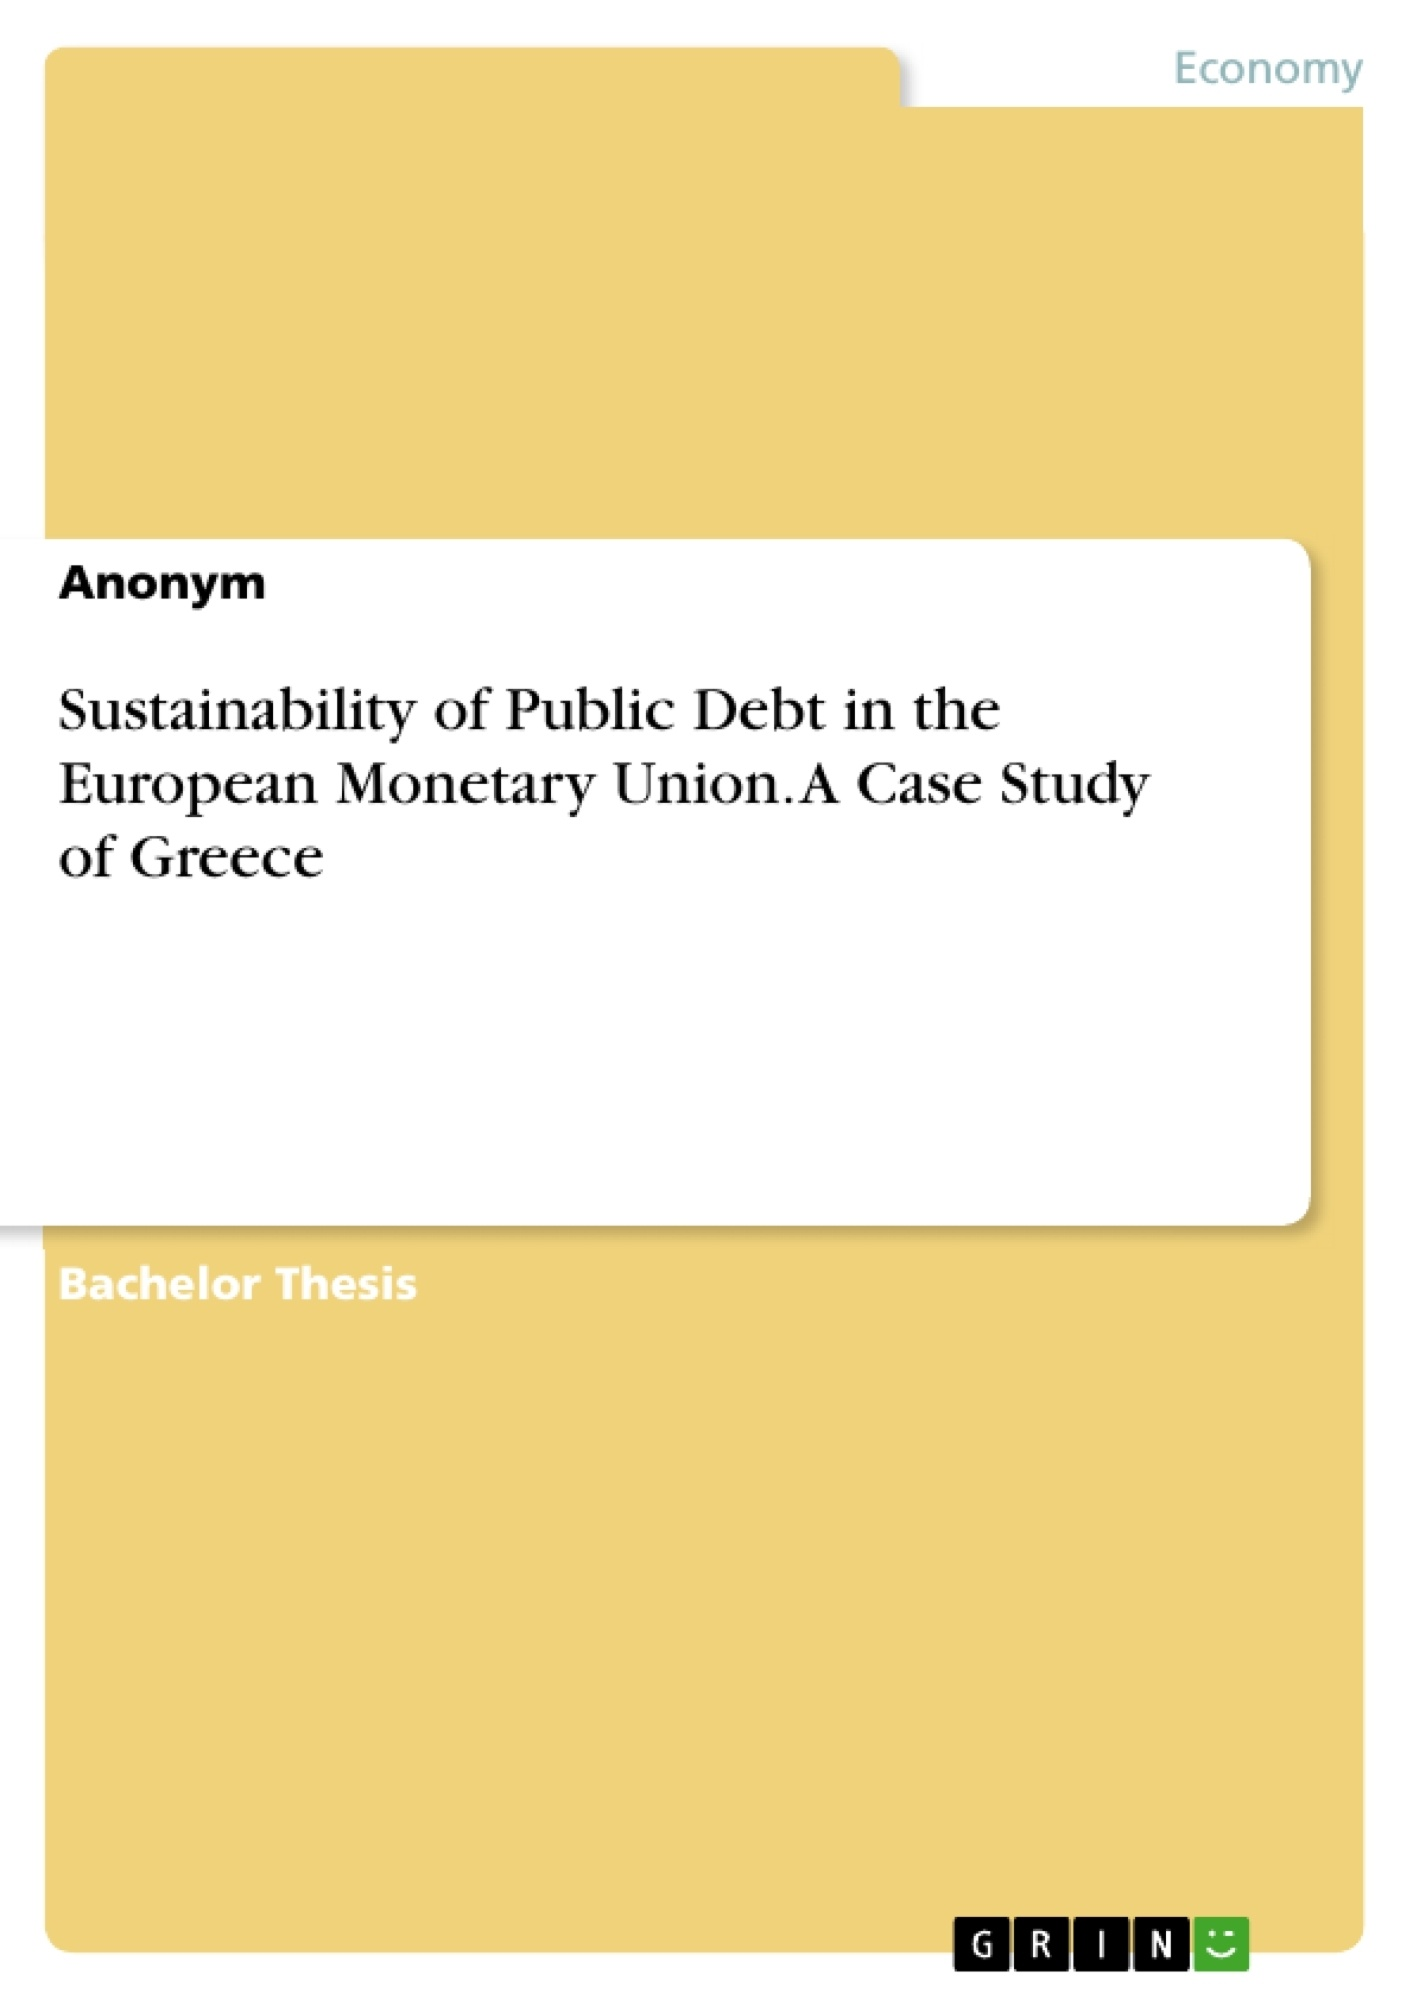 Title: Sustainability of Public Debt in the European Monetary Union. A Case Study of Greece